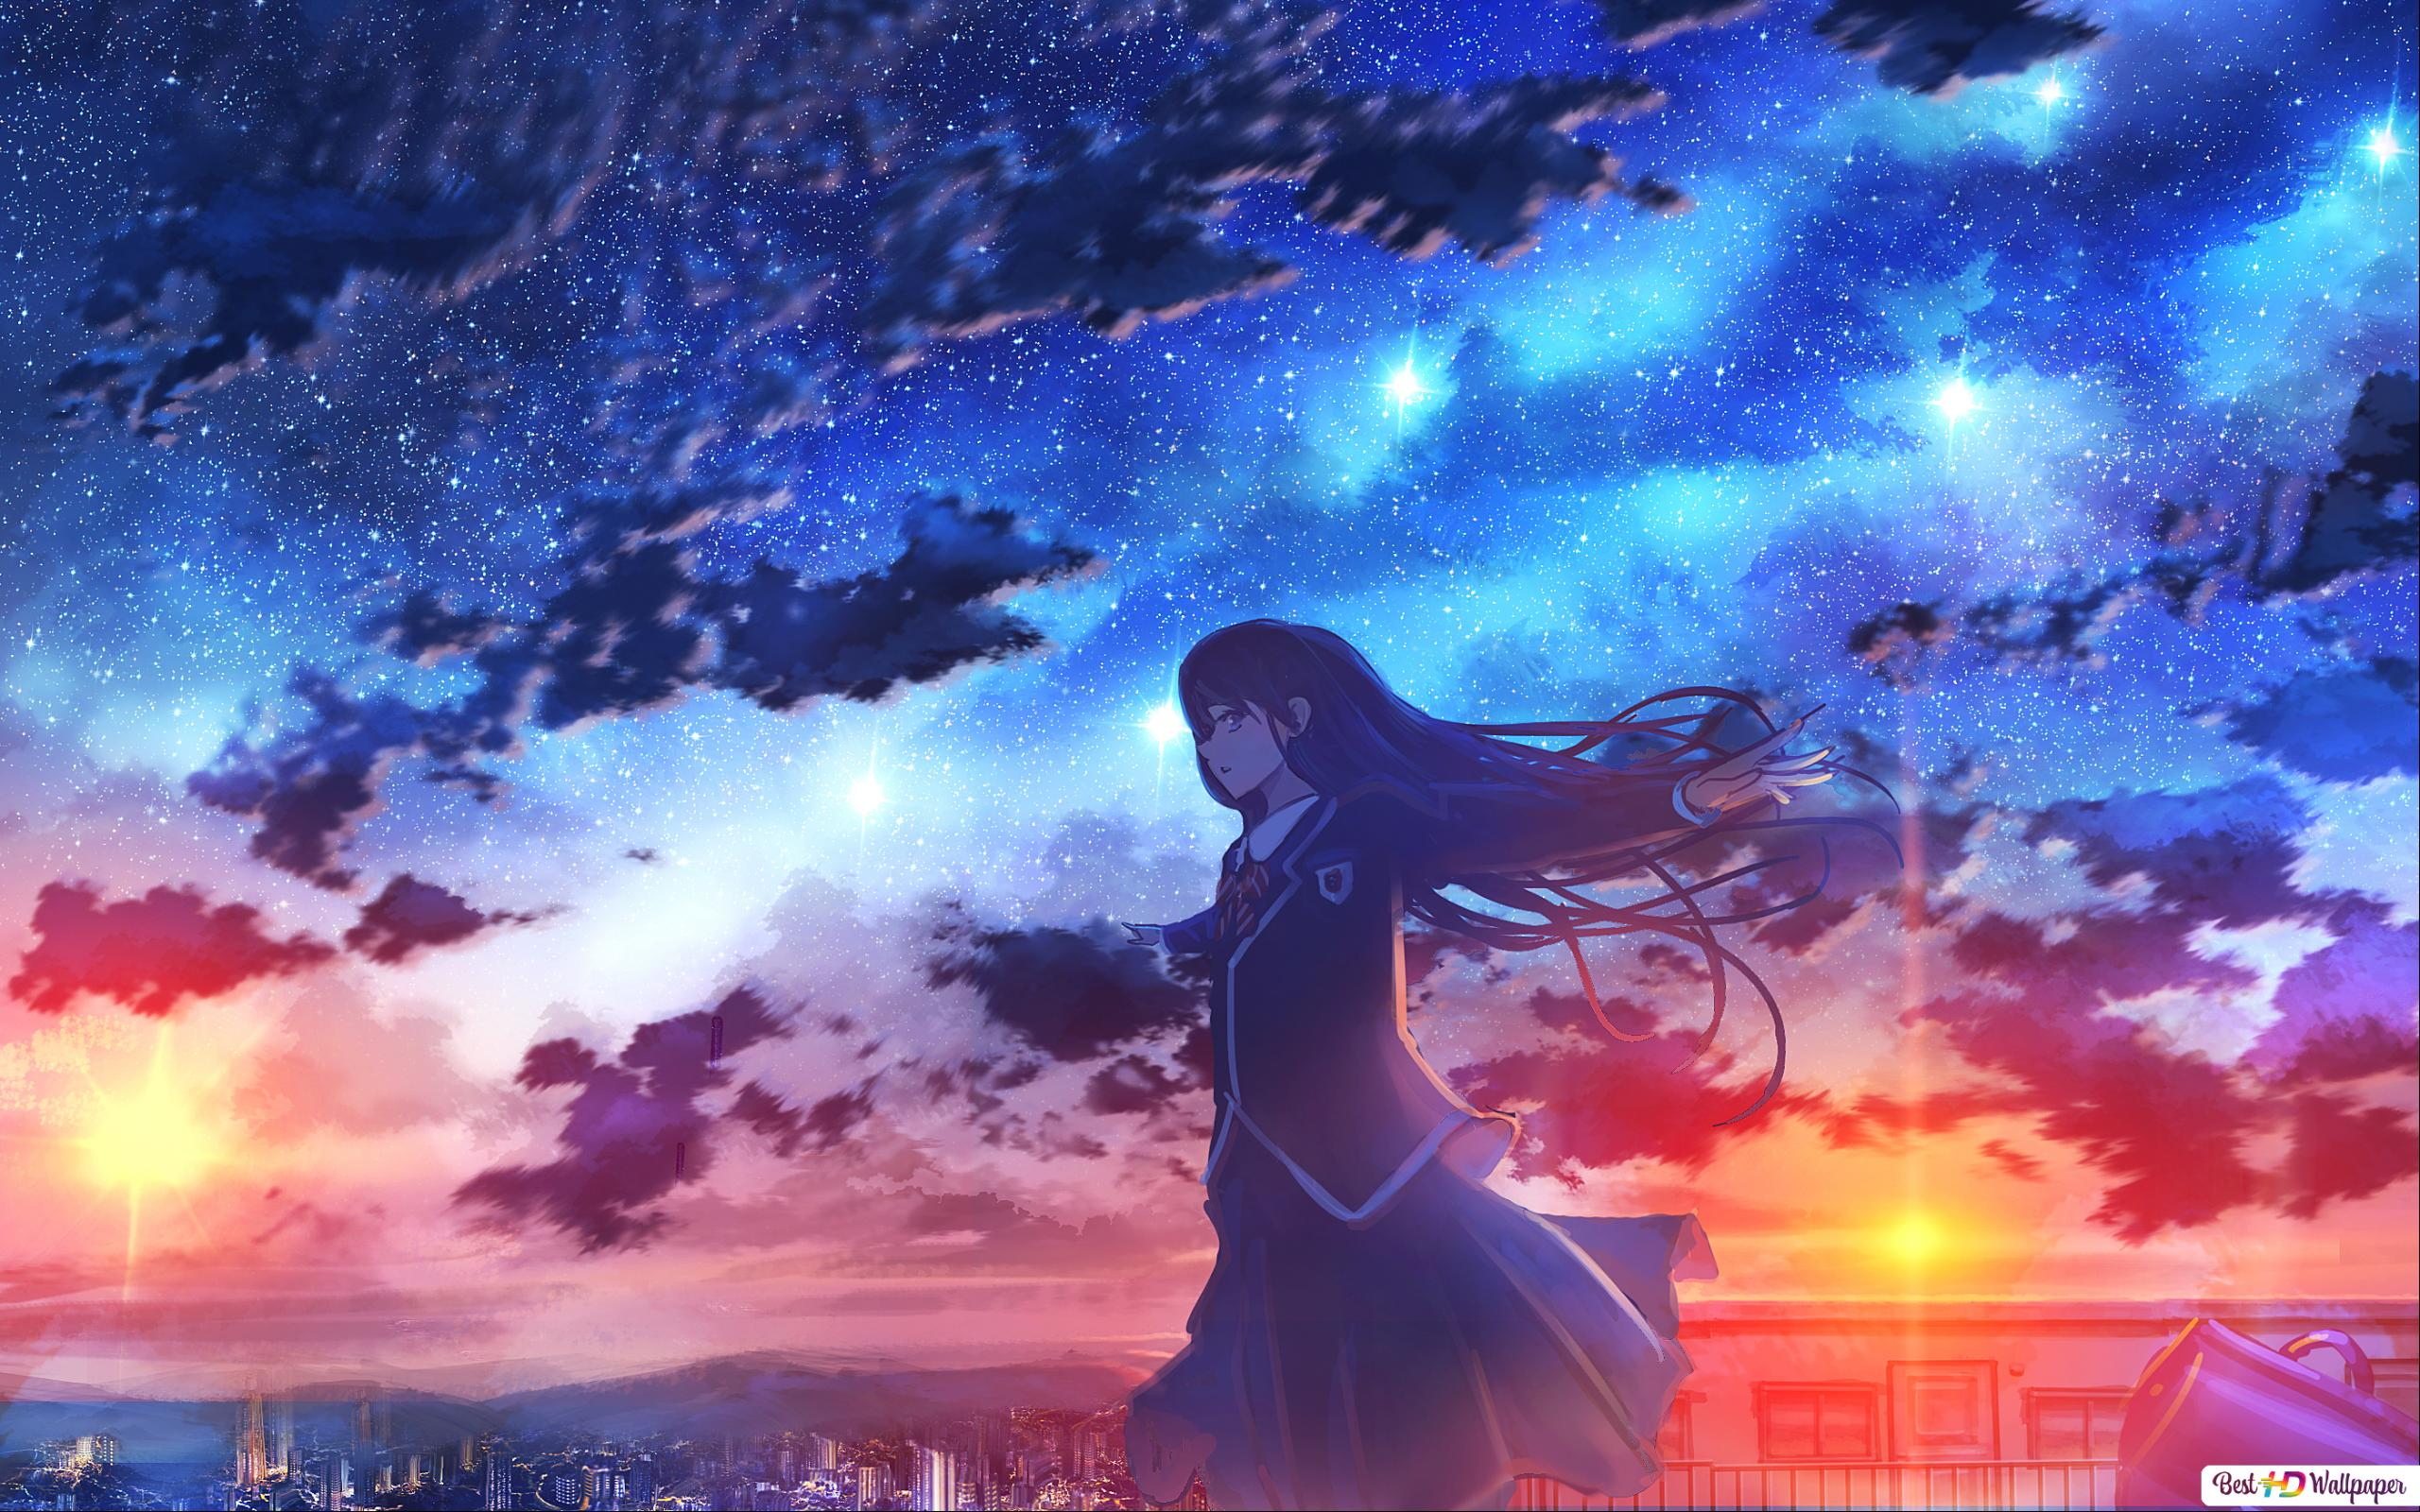 Anime Girl Sunset And Sky Hd Wallpaper Download